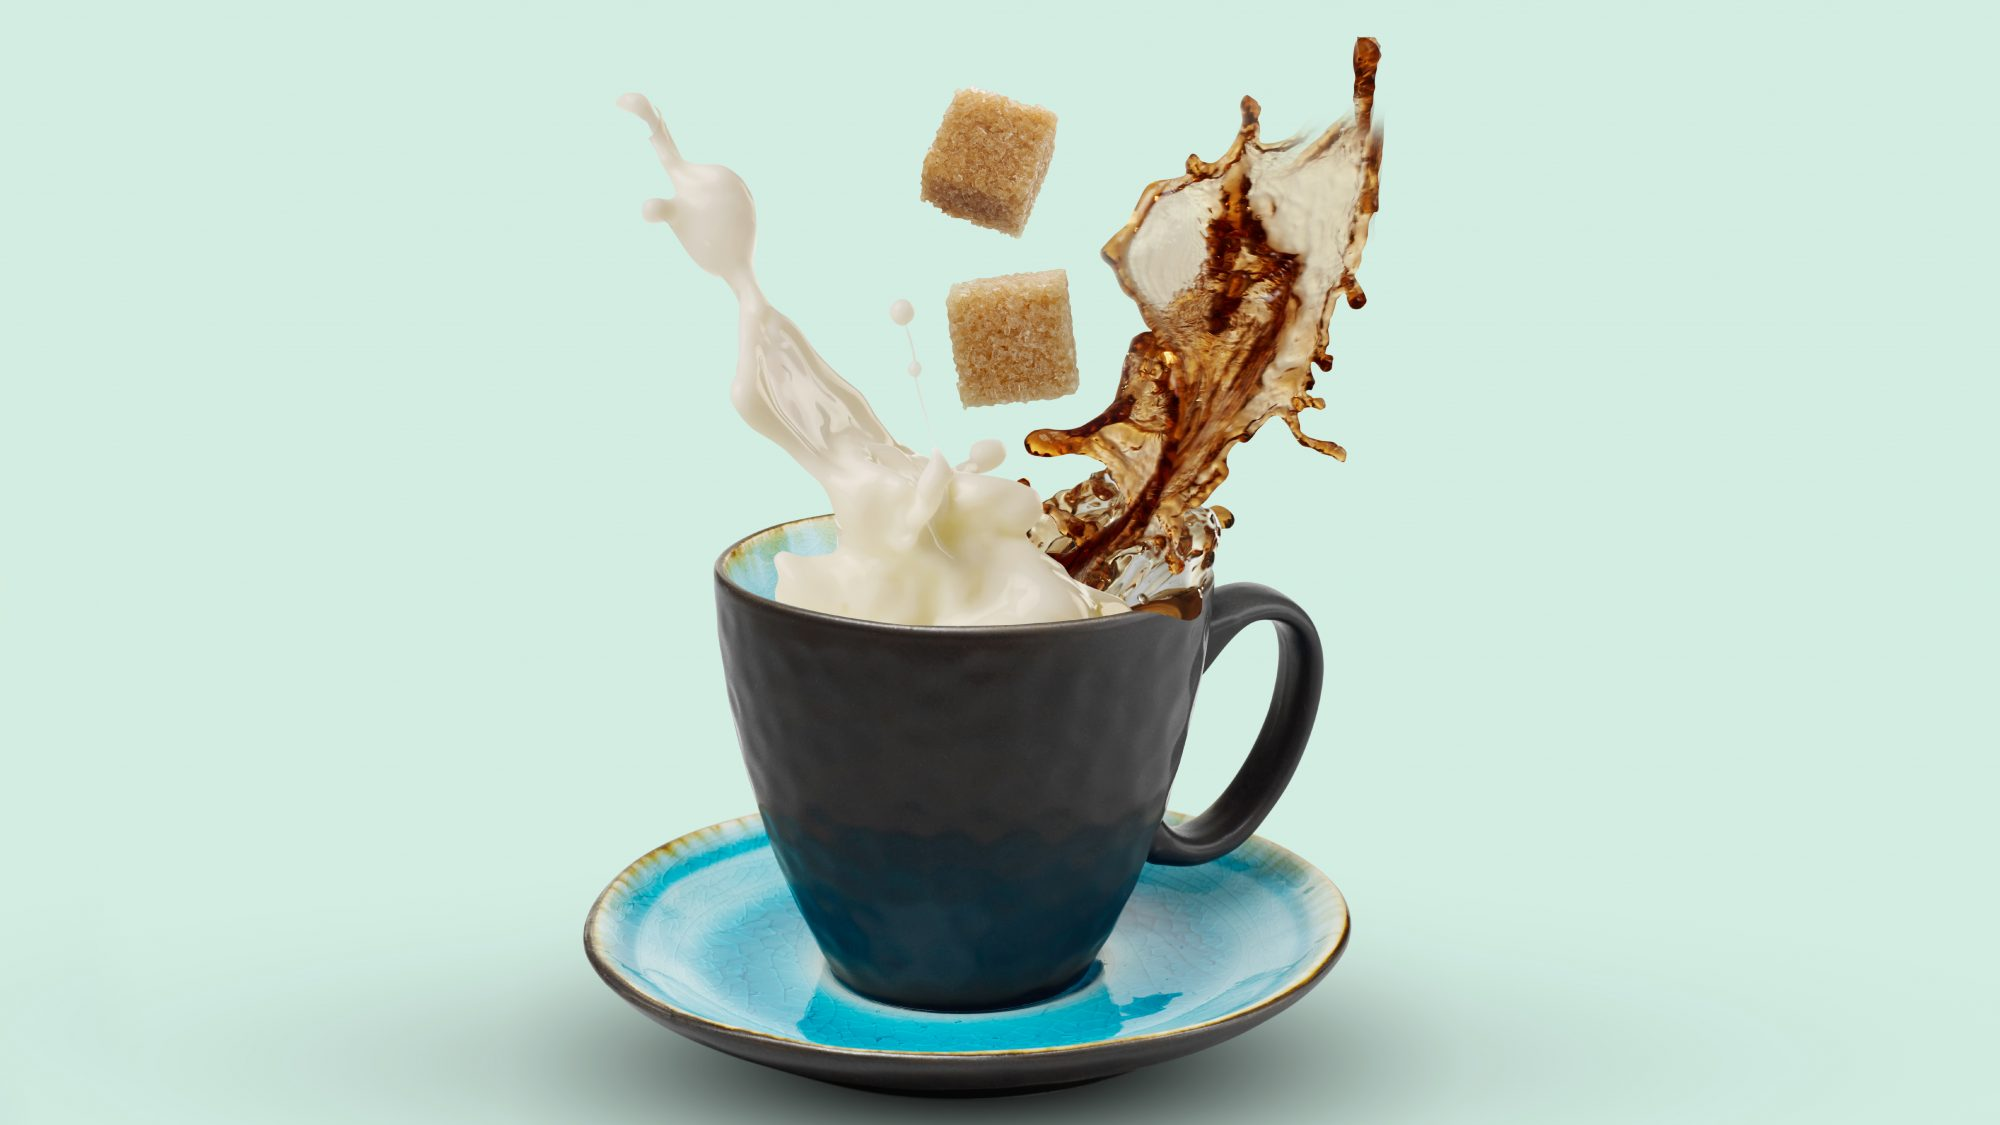 coffee with milk and sugar: the worst foods for gut health, according to doctors